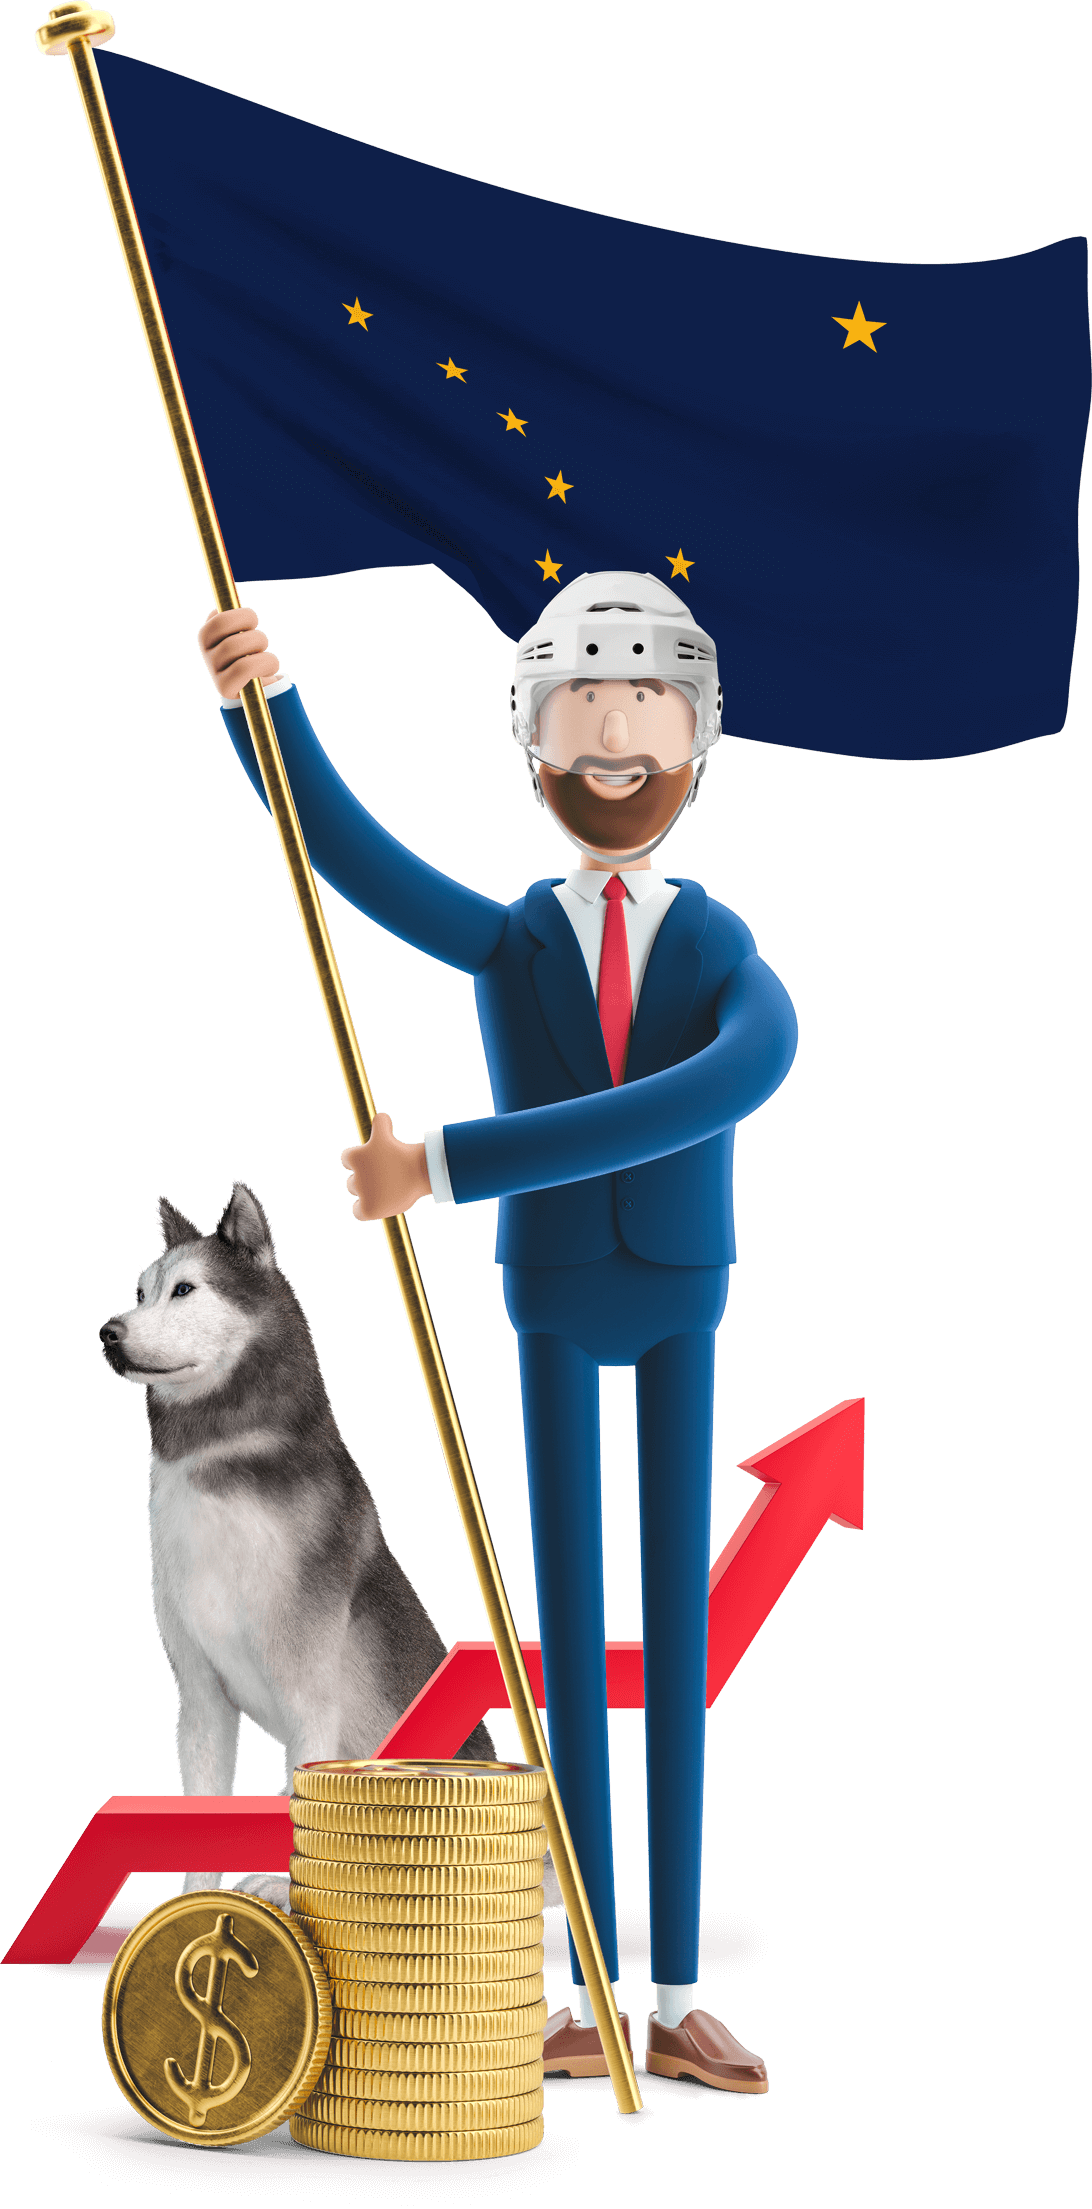 Alaska flag held by MetCredit USA businessman who's wearing a hockey helmet and standing next to a husky